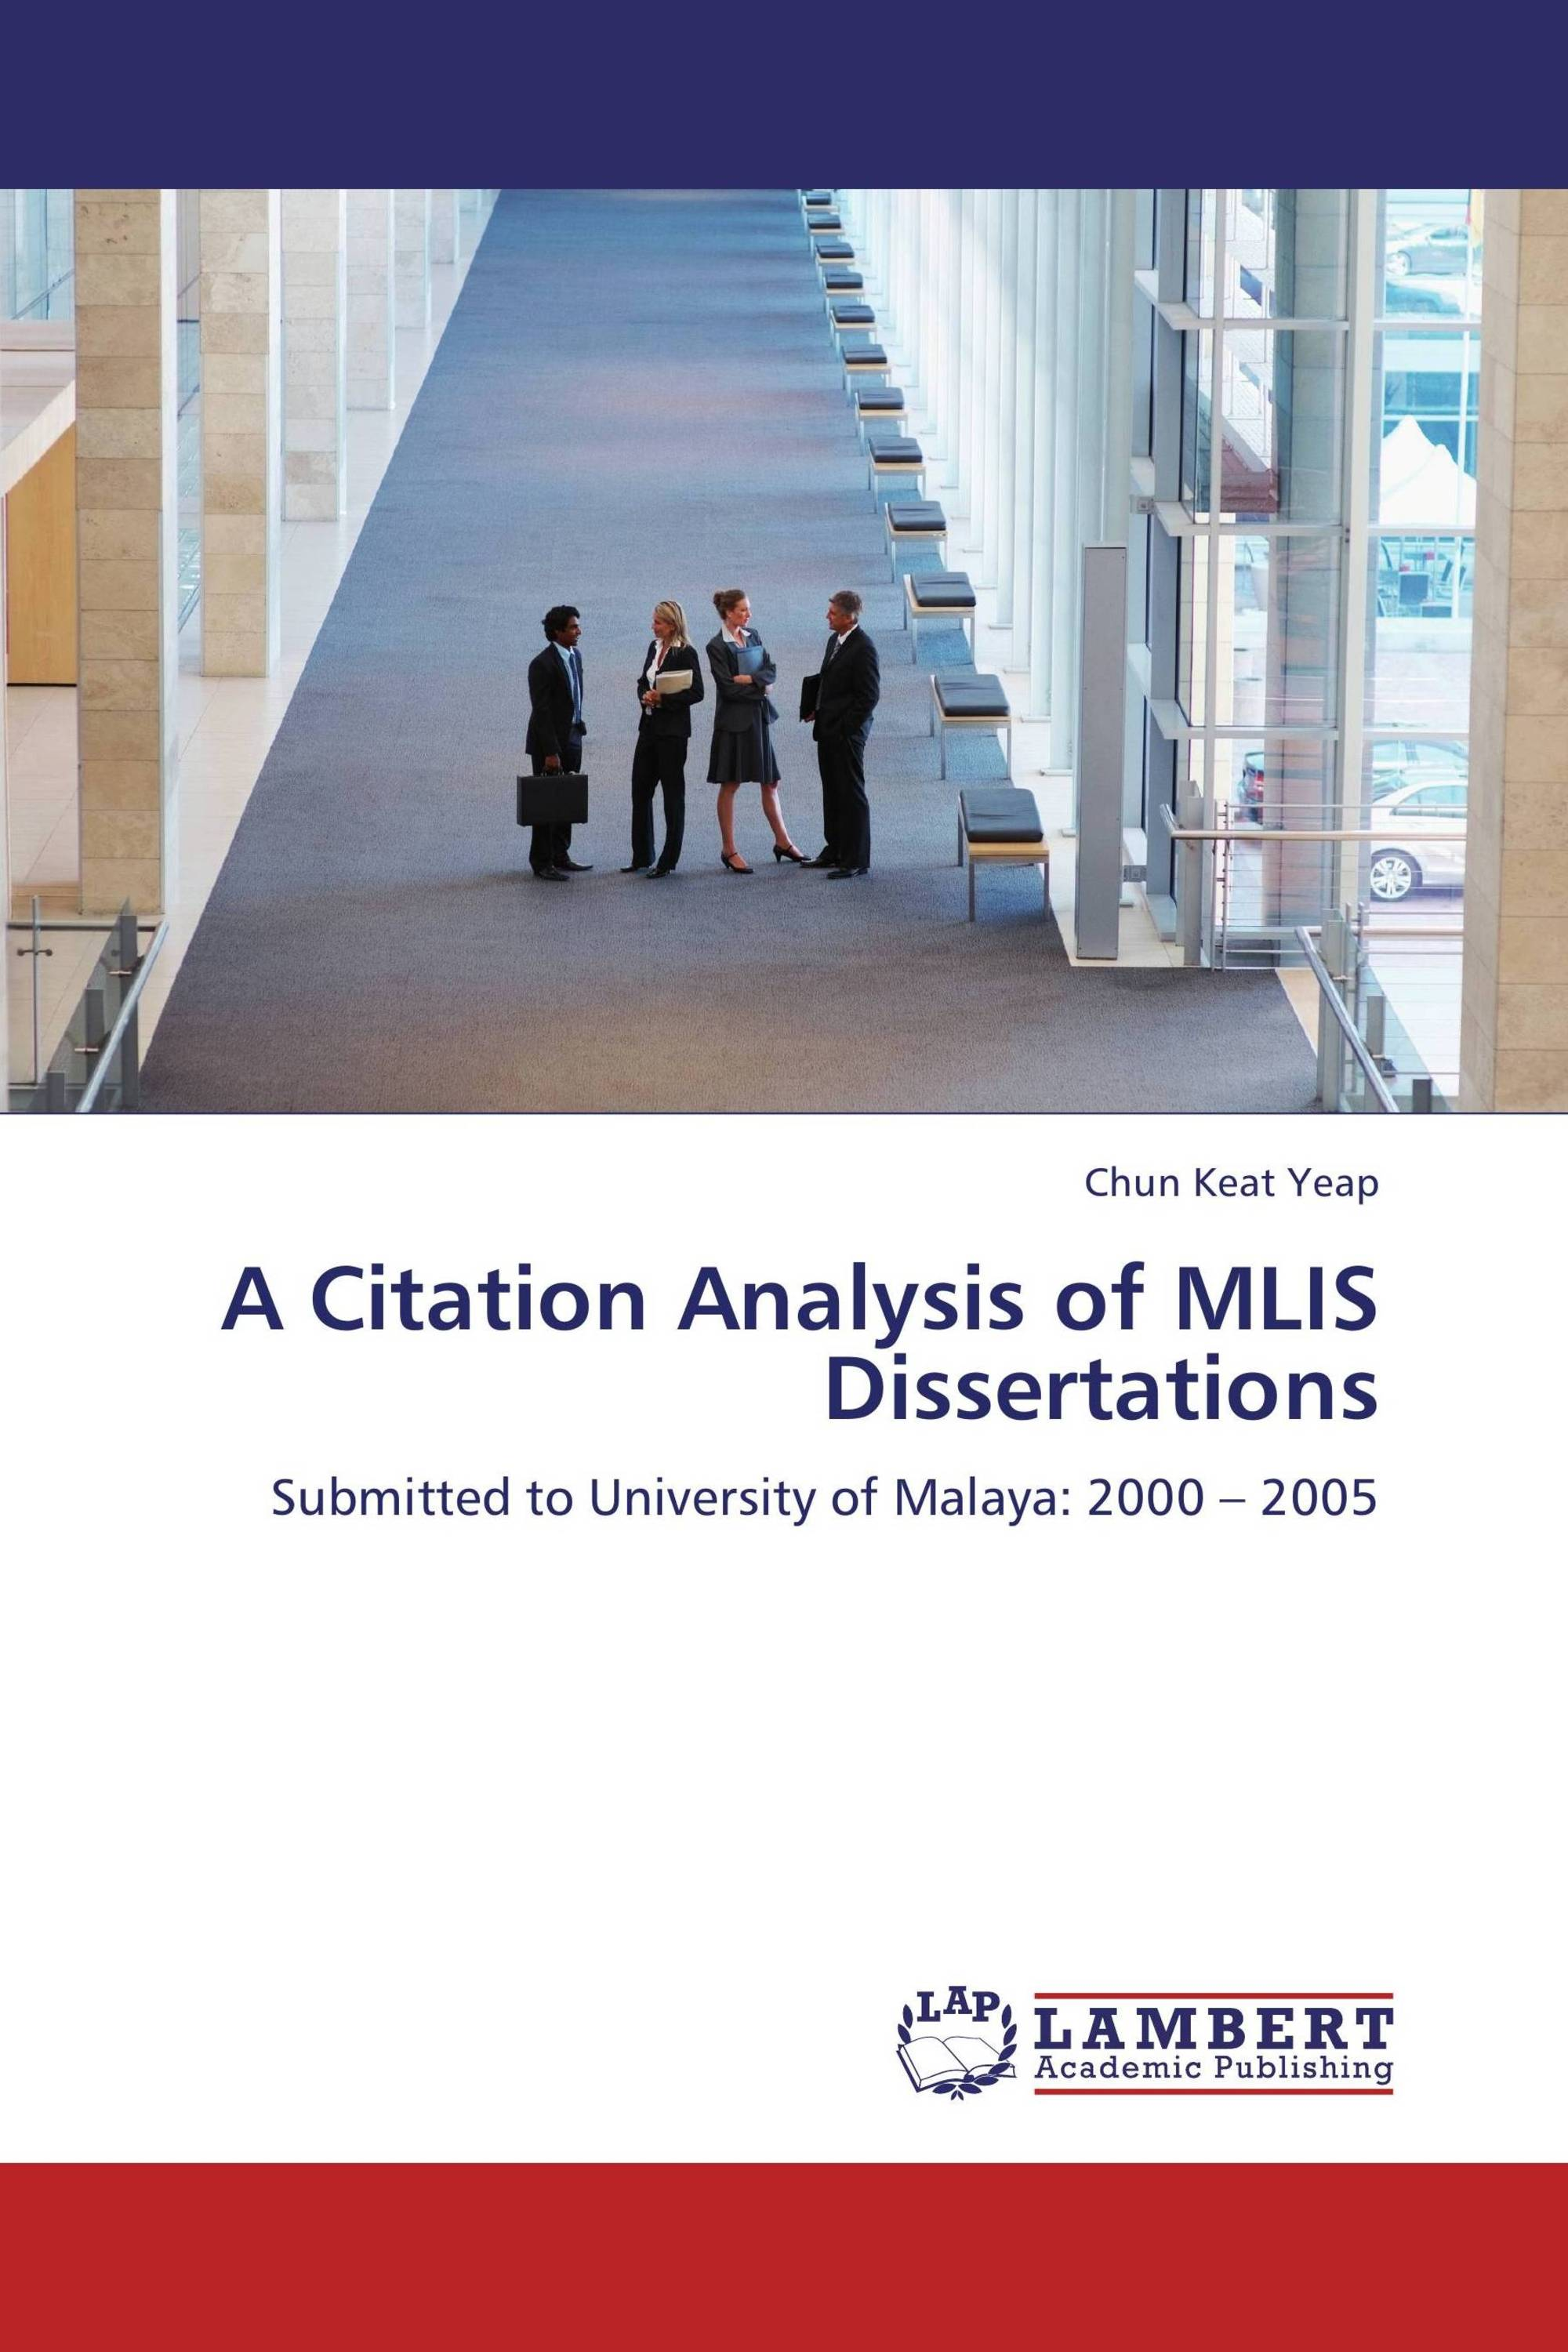 citation analysis dissertation Citation analysis of dissertations submitted to the department of animal science, university of ibadan, nigeria annals of library and information science, 56.